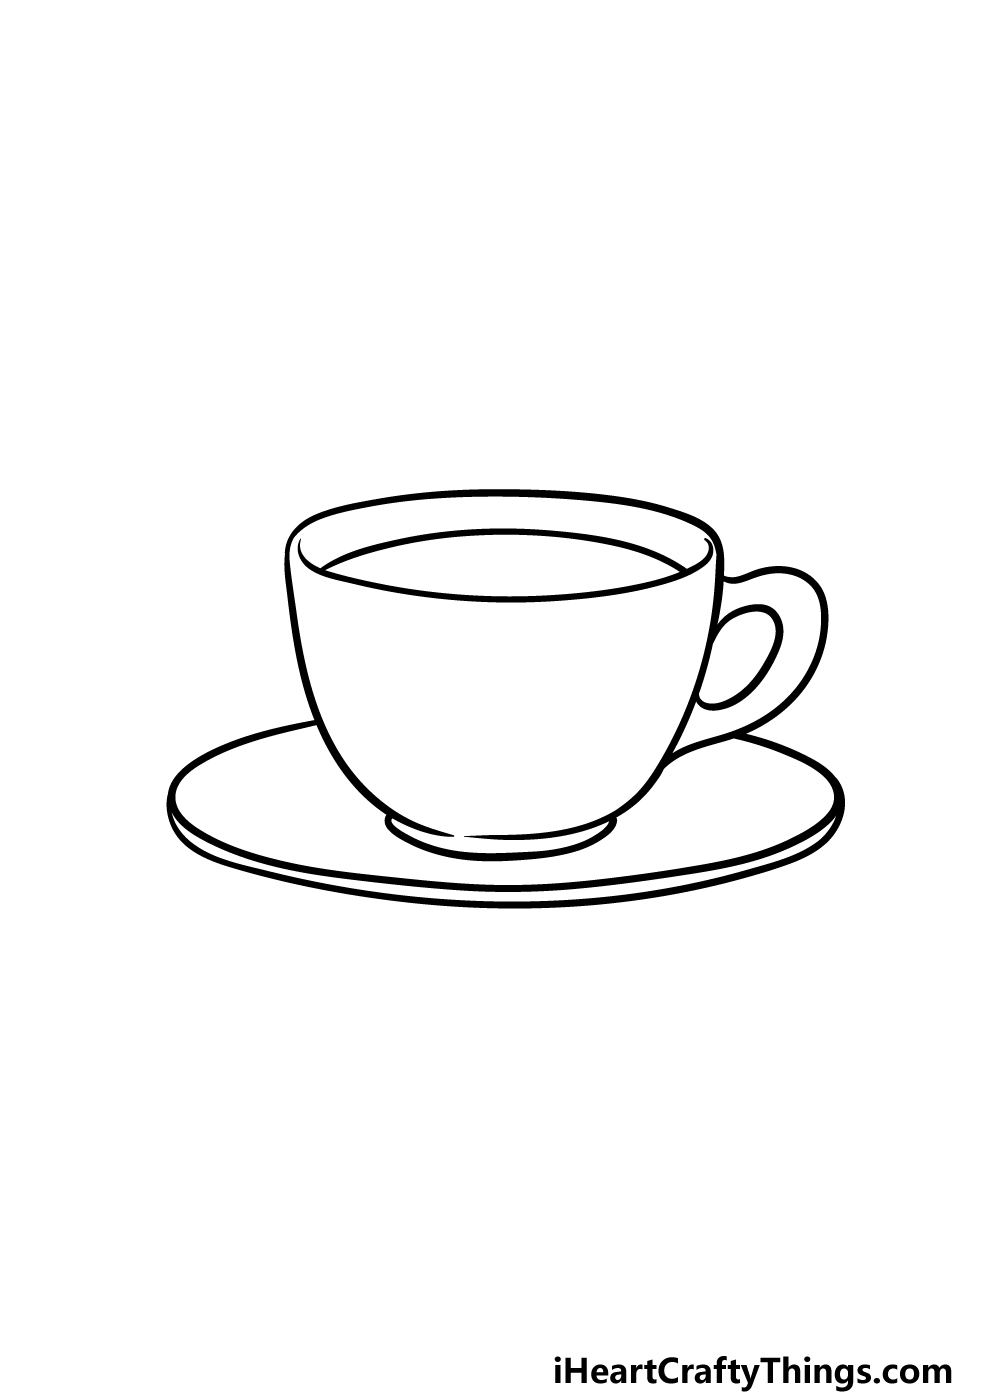 drawing a tea cup step 3